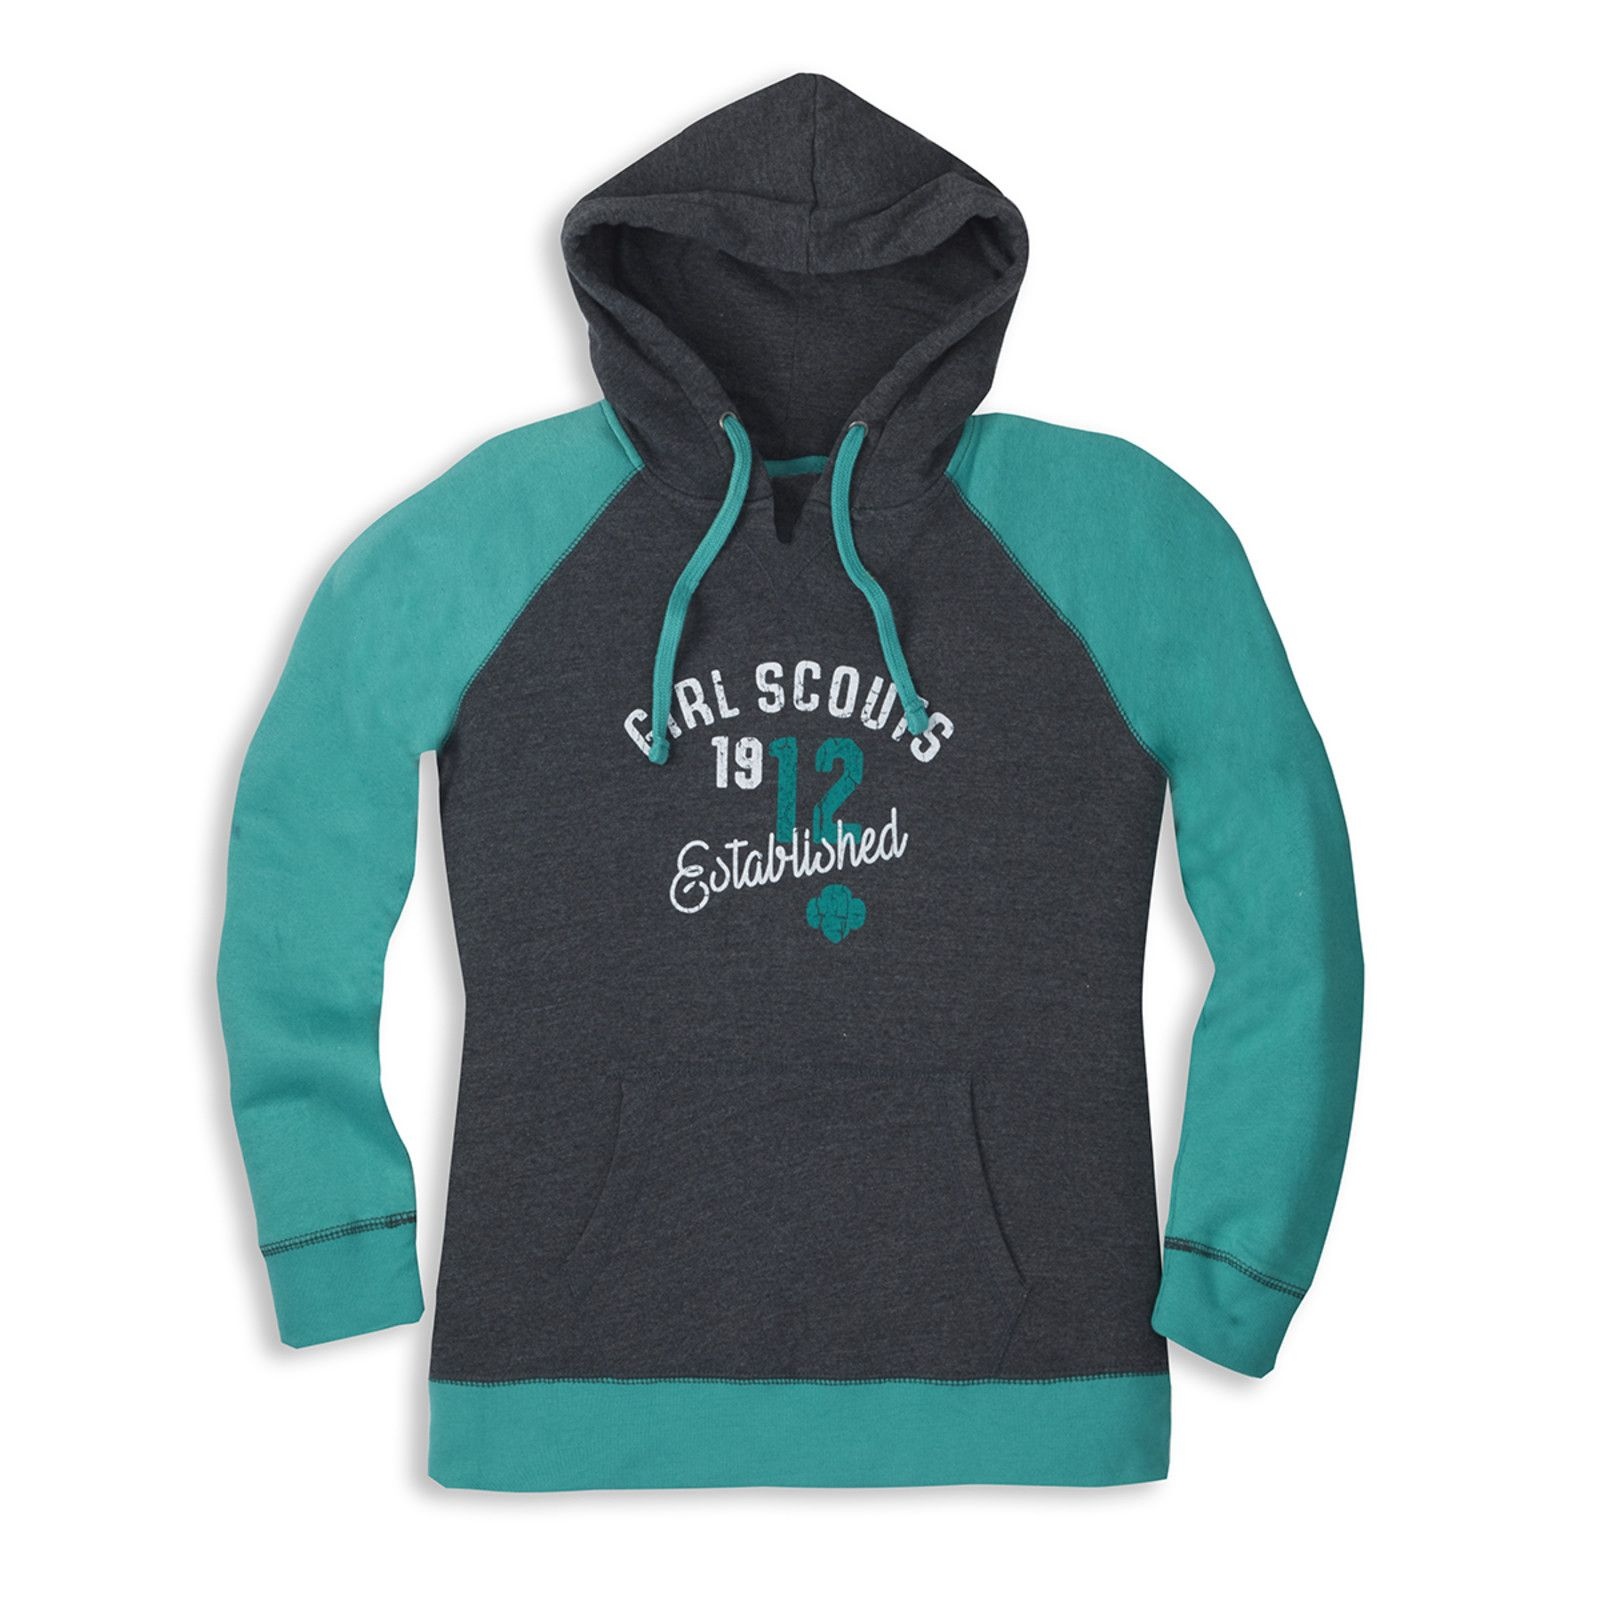 Two Tone Hooded Girl Scout Pullover Sweatshirt Raglan